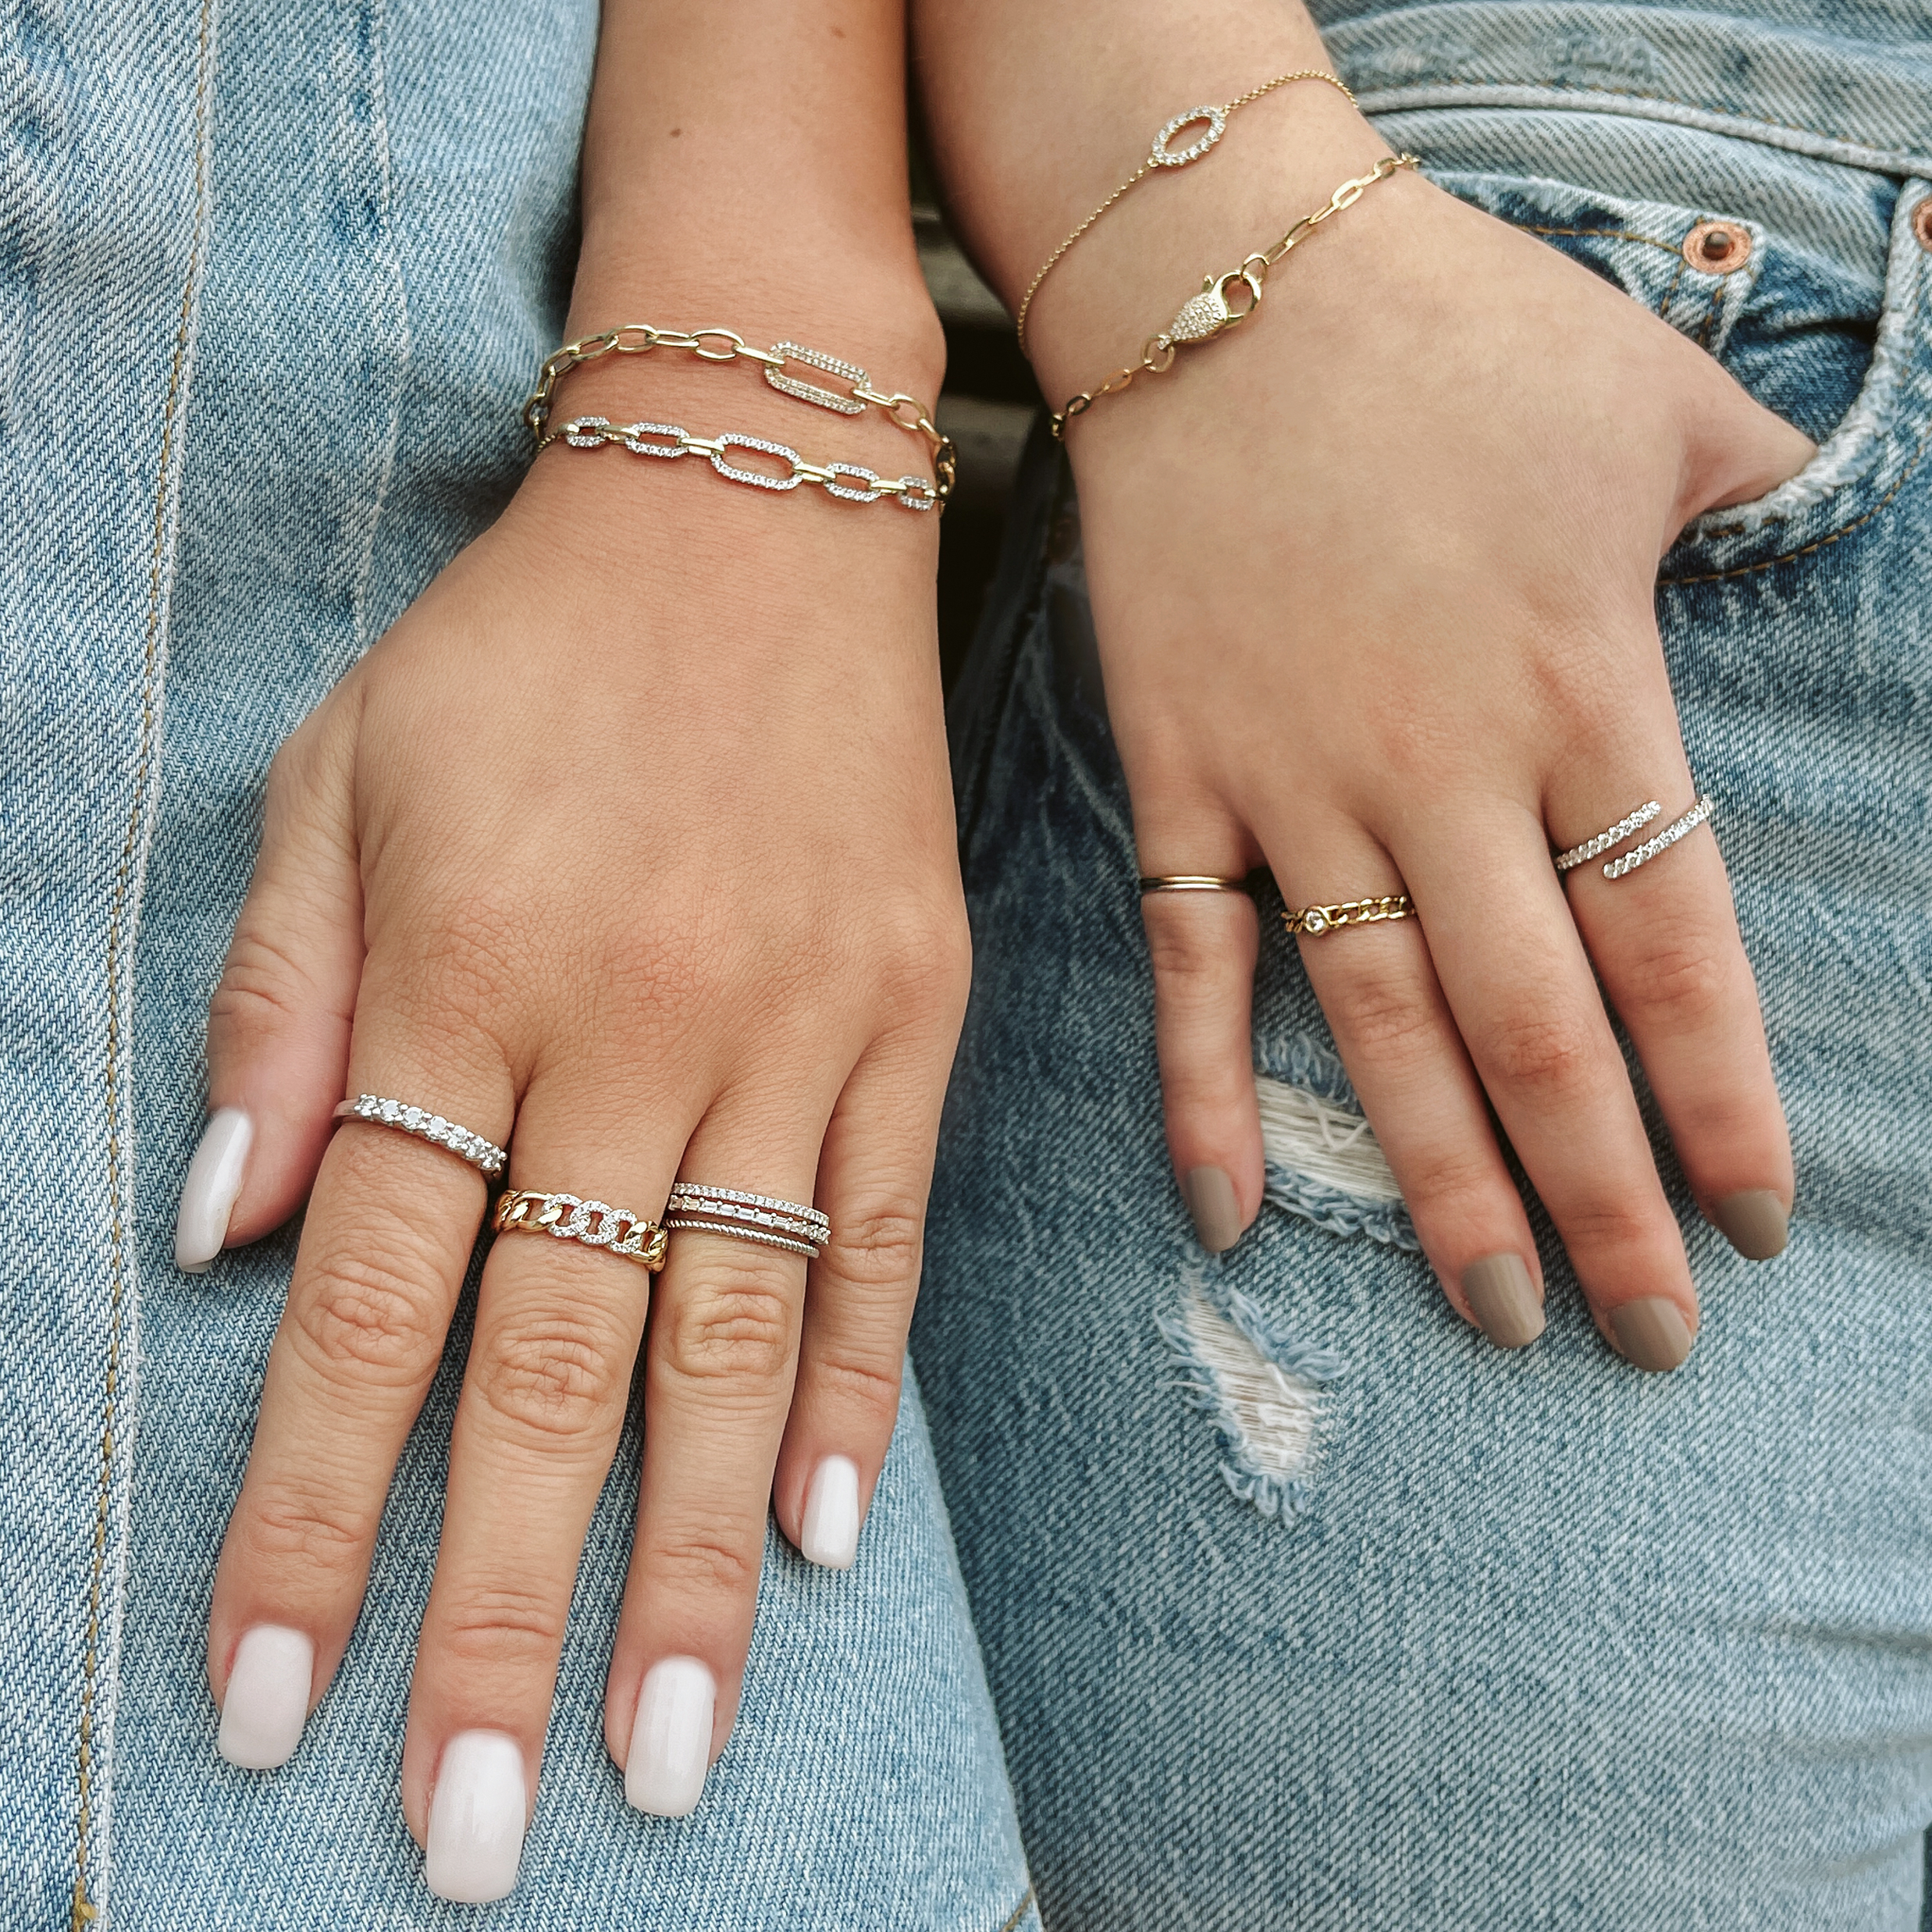 How to Match Jewelry with Your Outfit